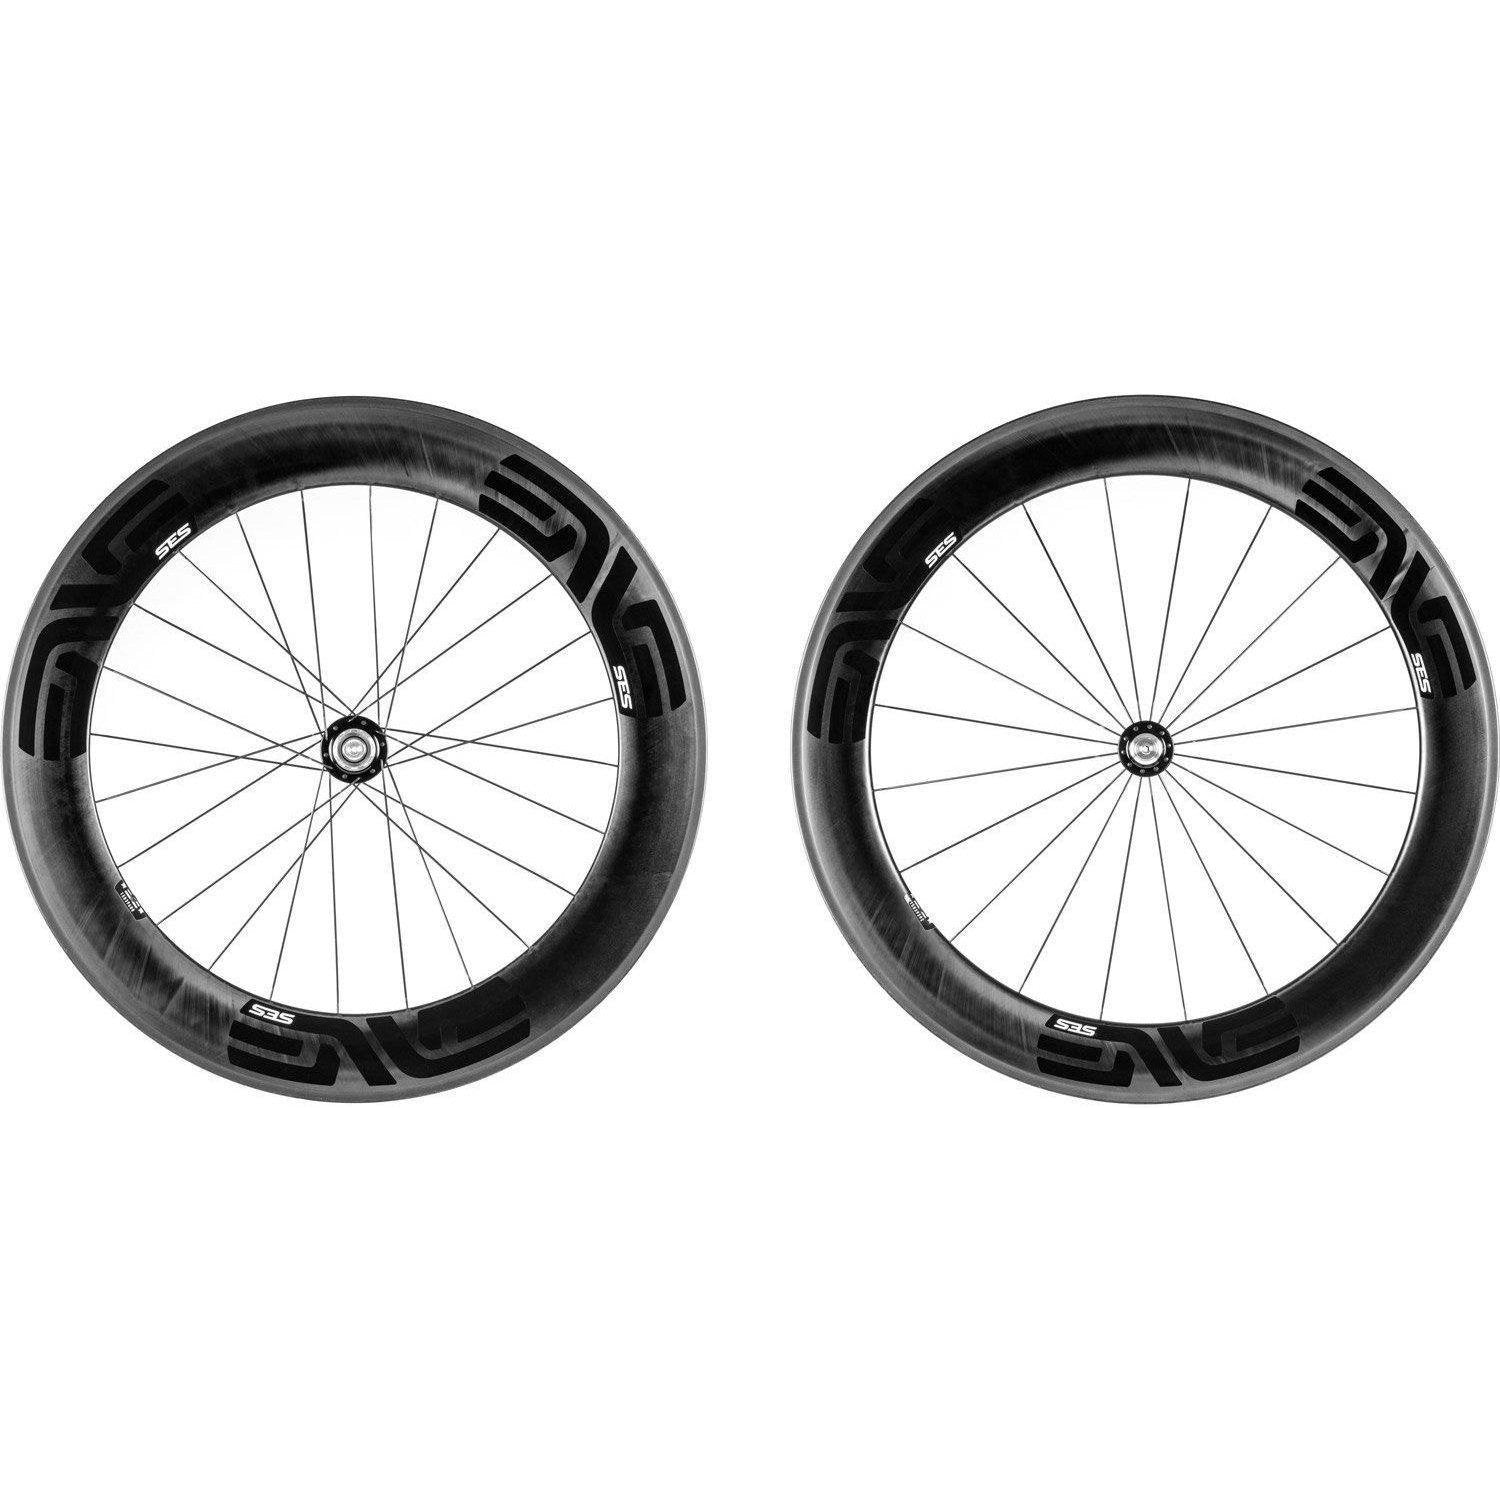 ENVE-ENVE SES 7.8 Wheelset - Rim Brake--saddleback-elite-performance-cycling